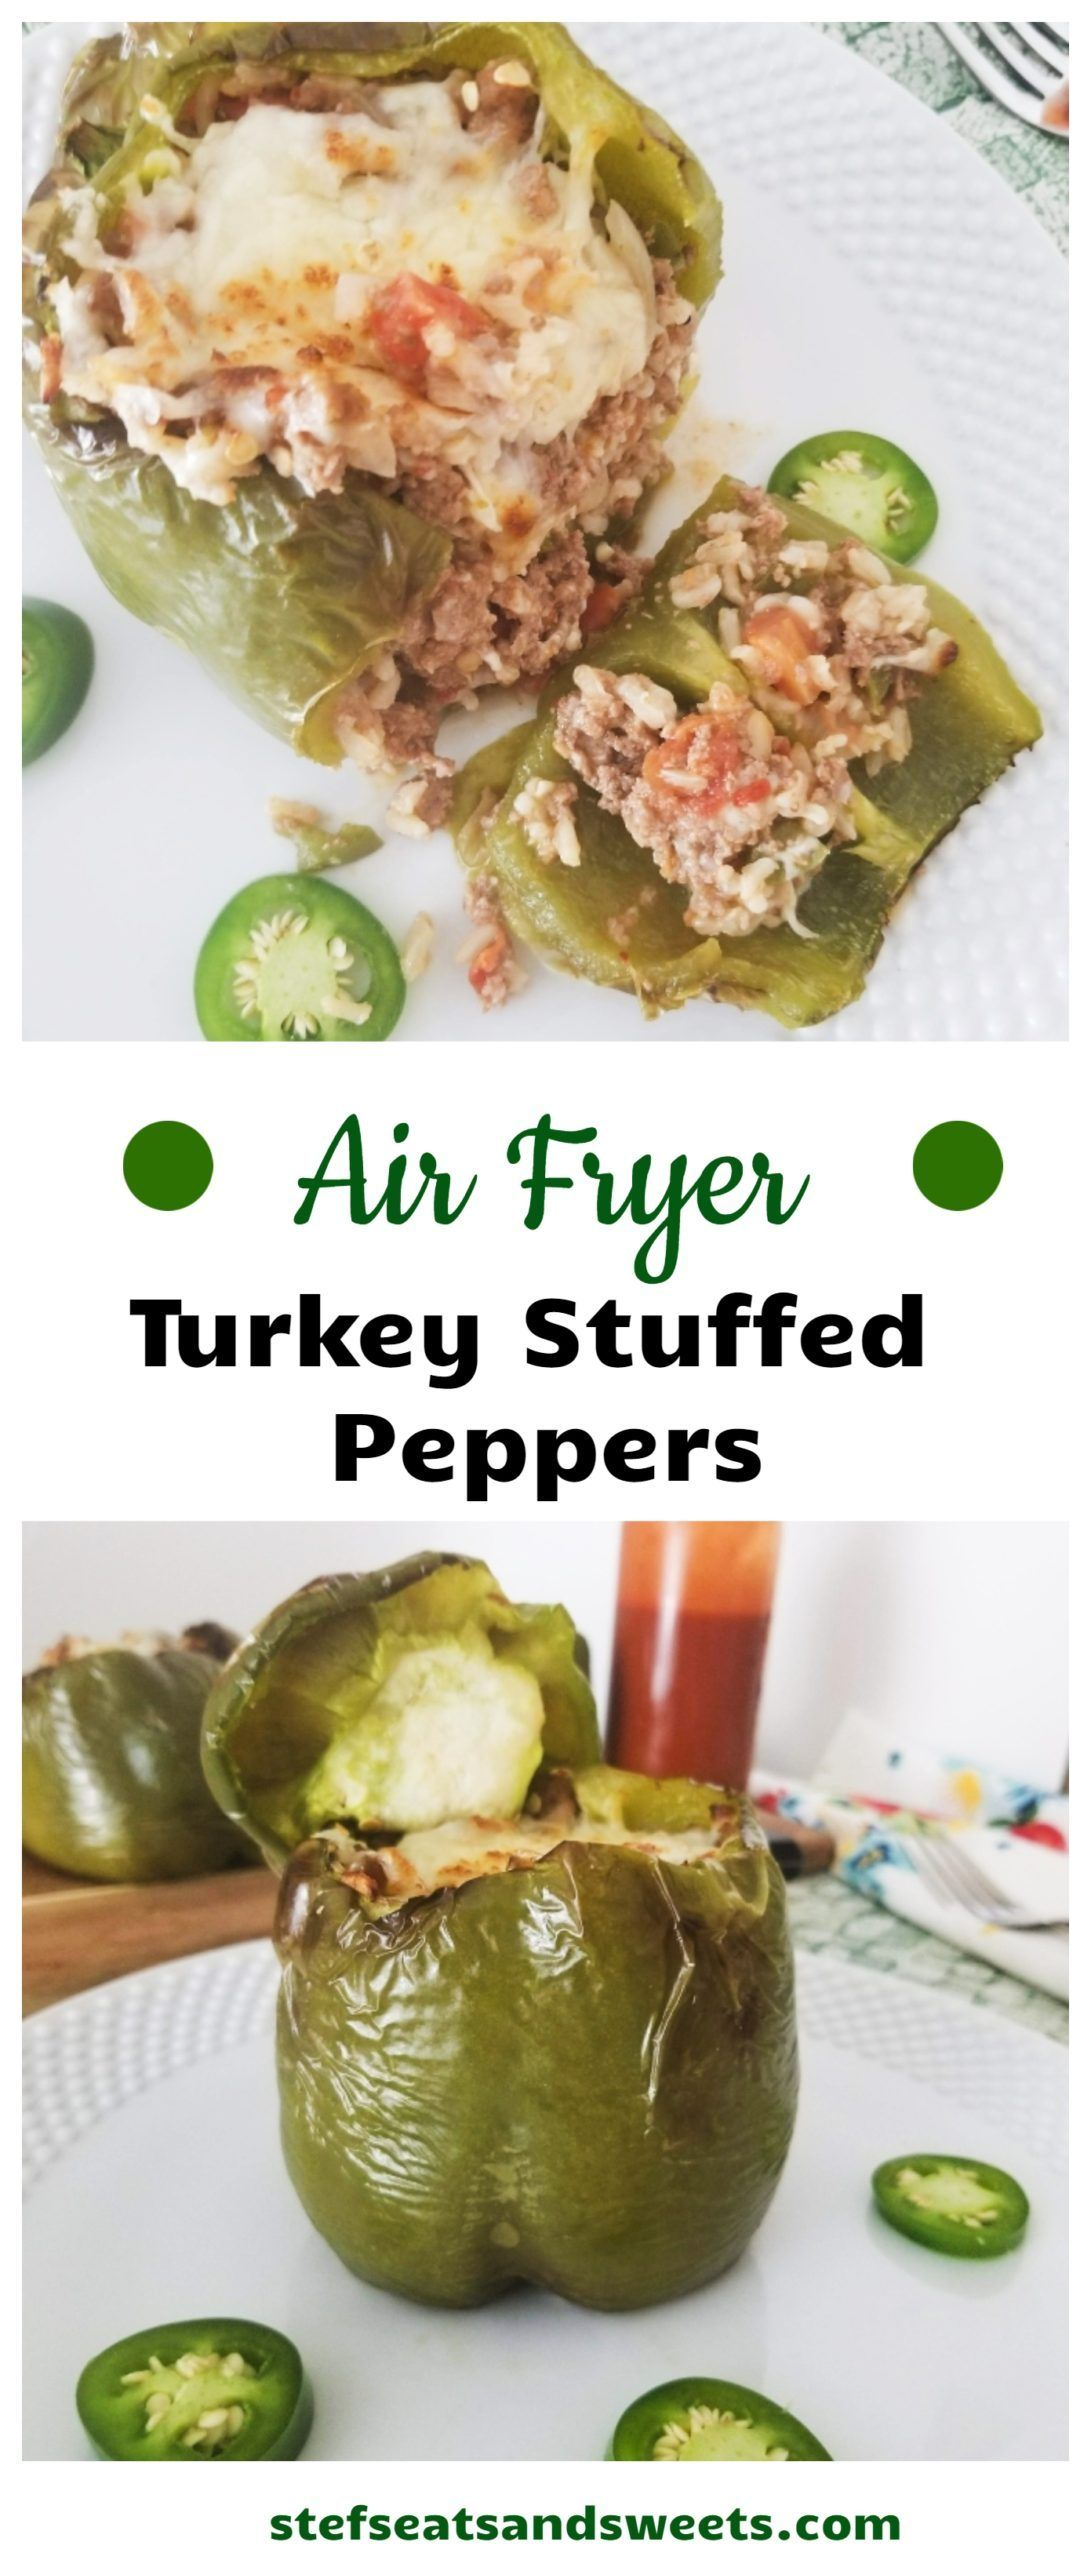 Air Fryer Turkey Stuffed Peppers Stef's Eats and Sweets